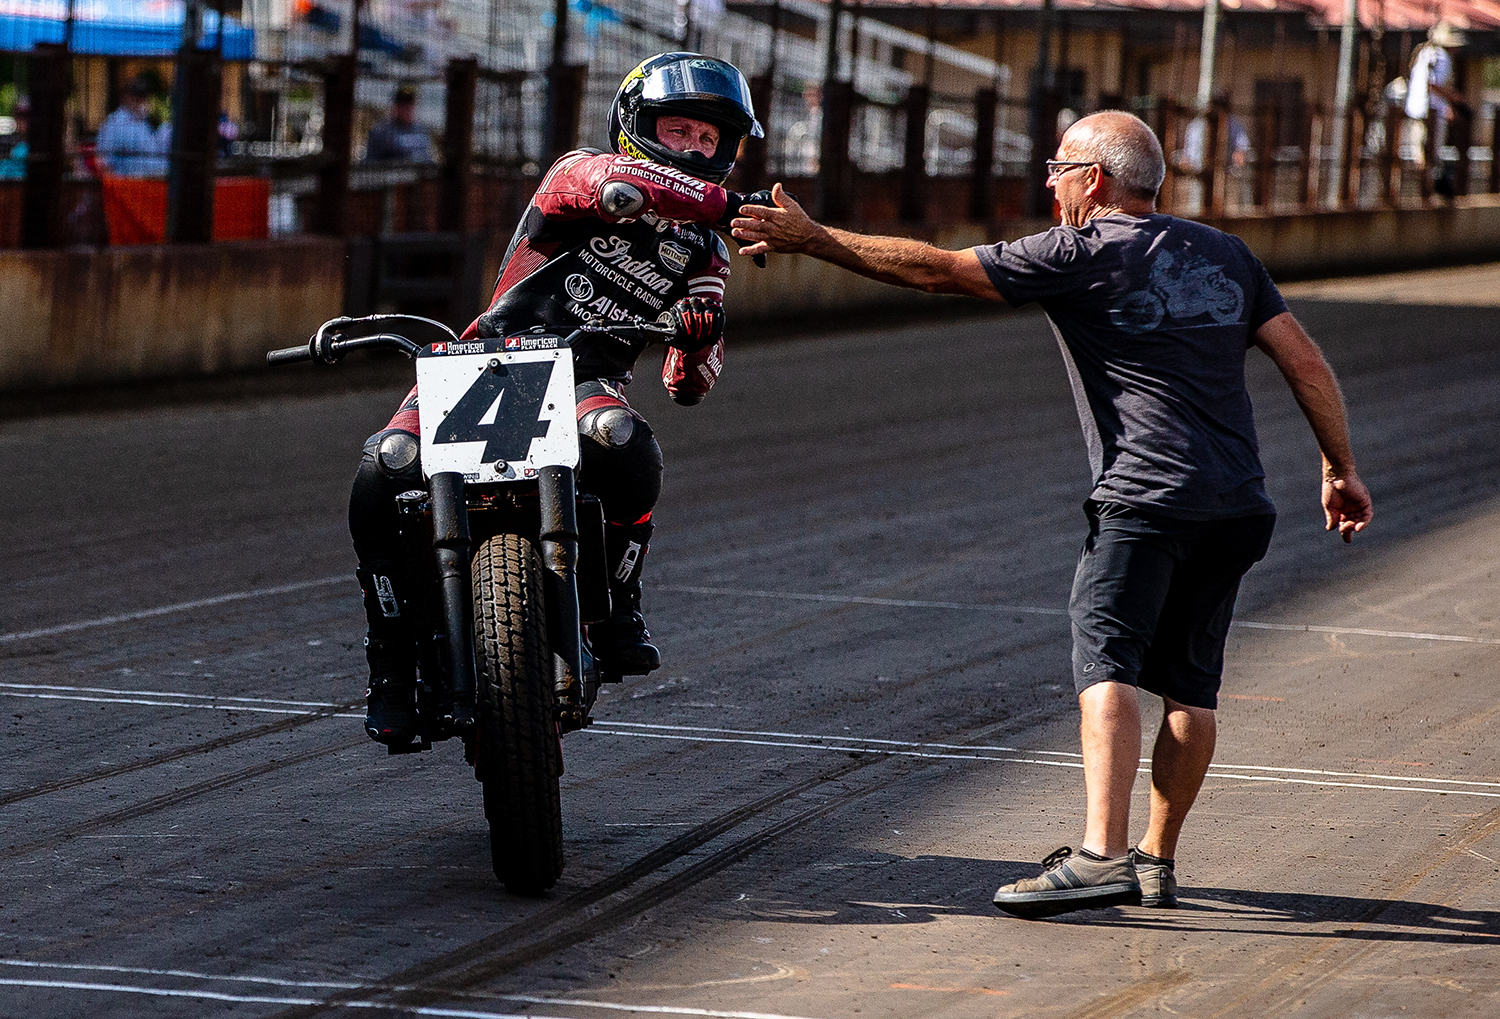 Bryan Smith gets a high five as he brings his Indian Scout FTR750 around for a victory lap after winning the American Flat Track Springfield Mile II at the Illinois State Fairgrounds, Sunday, Sept. 2, 2018, in Springfield, Ill. [Justin L. Fowler/The State Journal-Register]